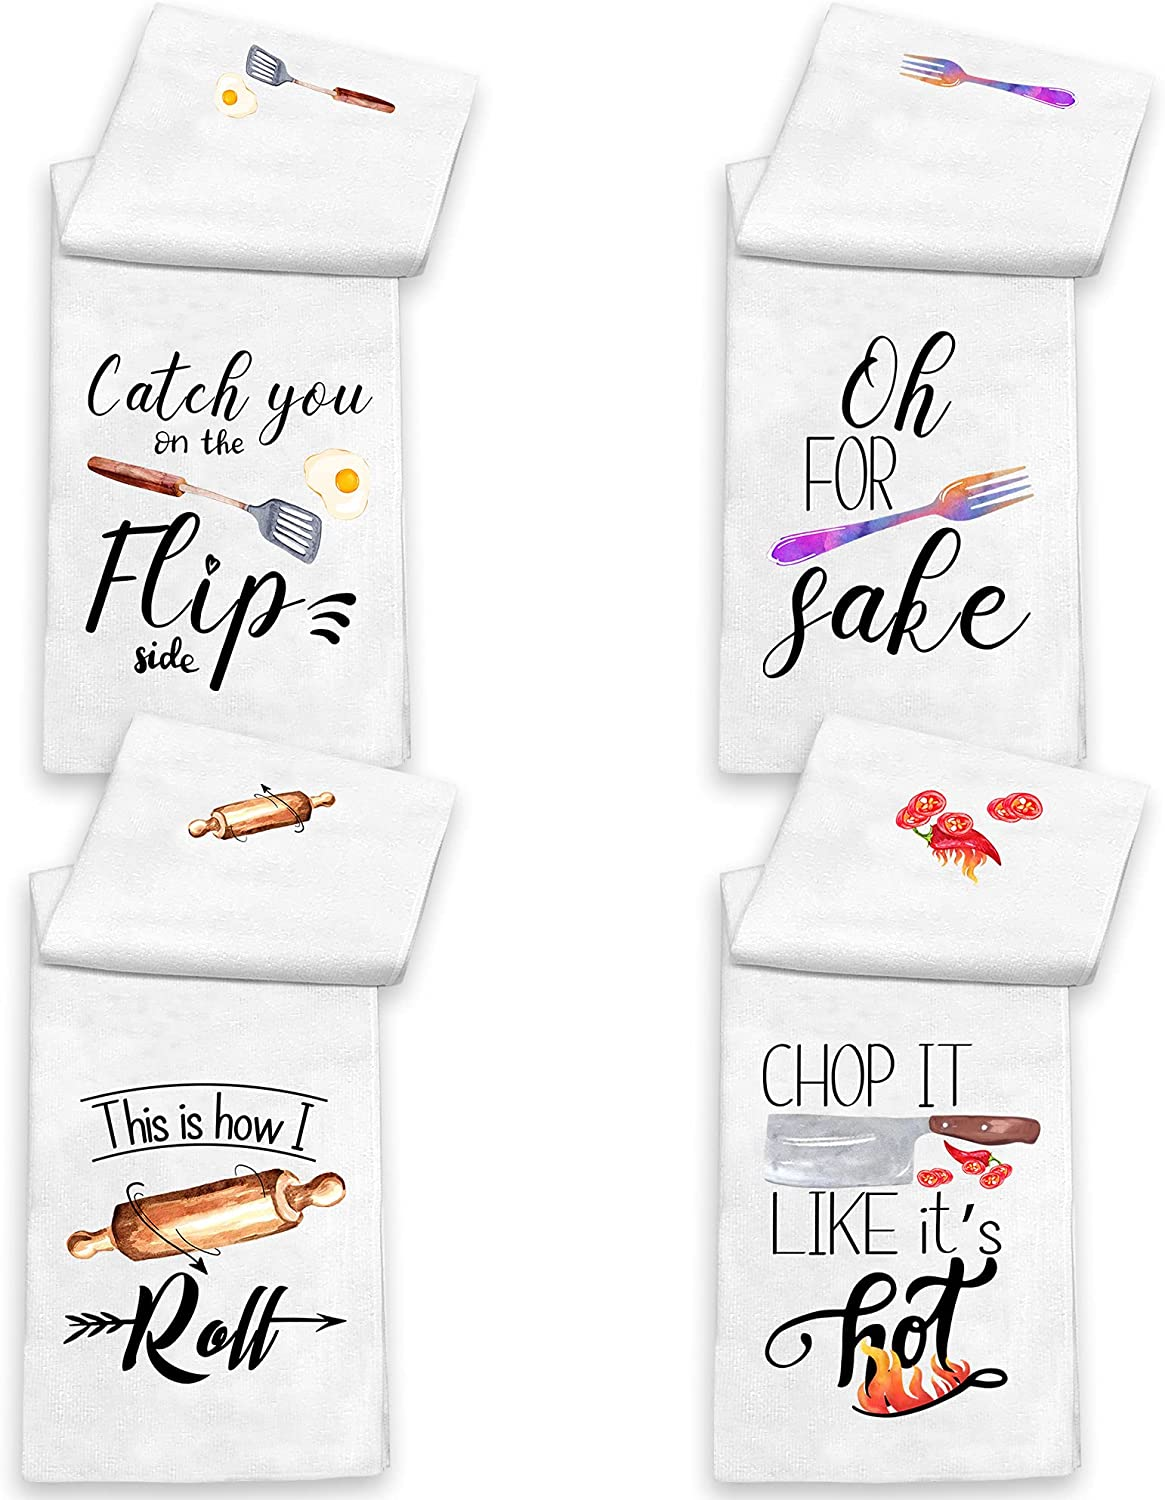 KamaLove Funny Kitchen Towels and Dishcloths Sets of 4 - Dish Towels with Sayings - House Warming Presents for New Home, Gifts for Women, Farmhouse Kitchen Decor, Colourful